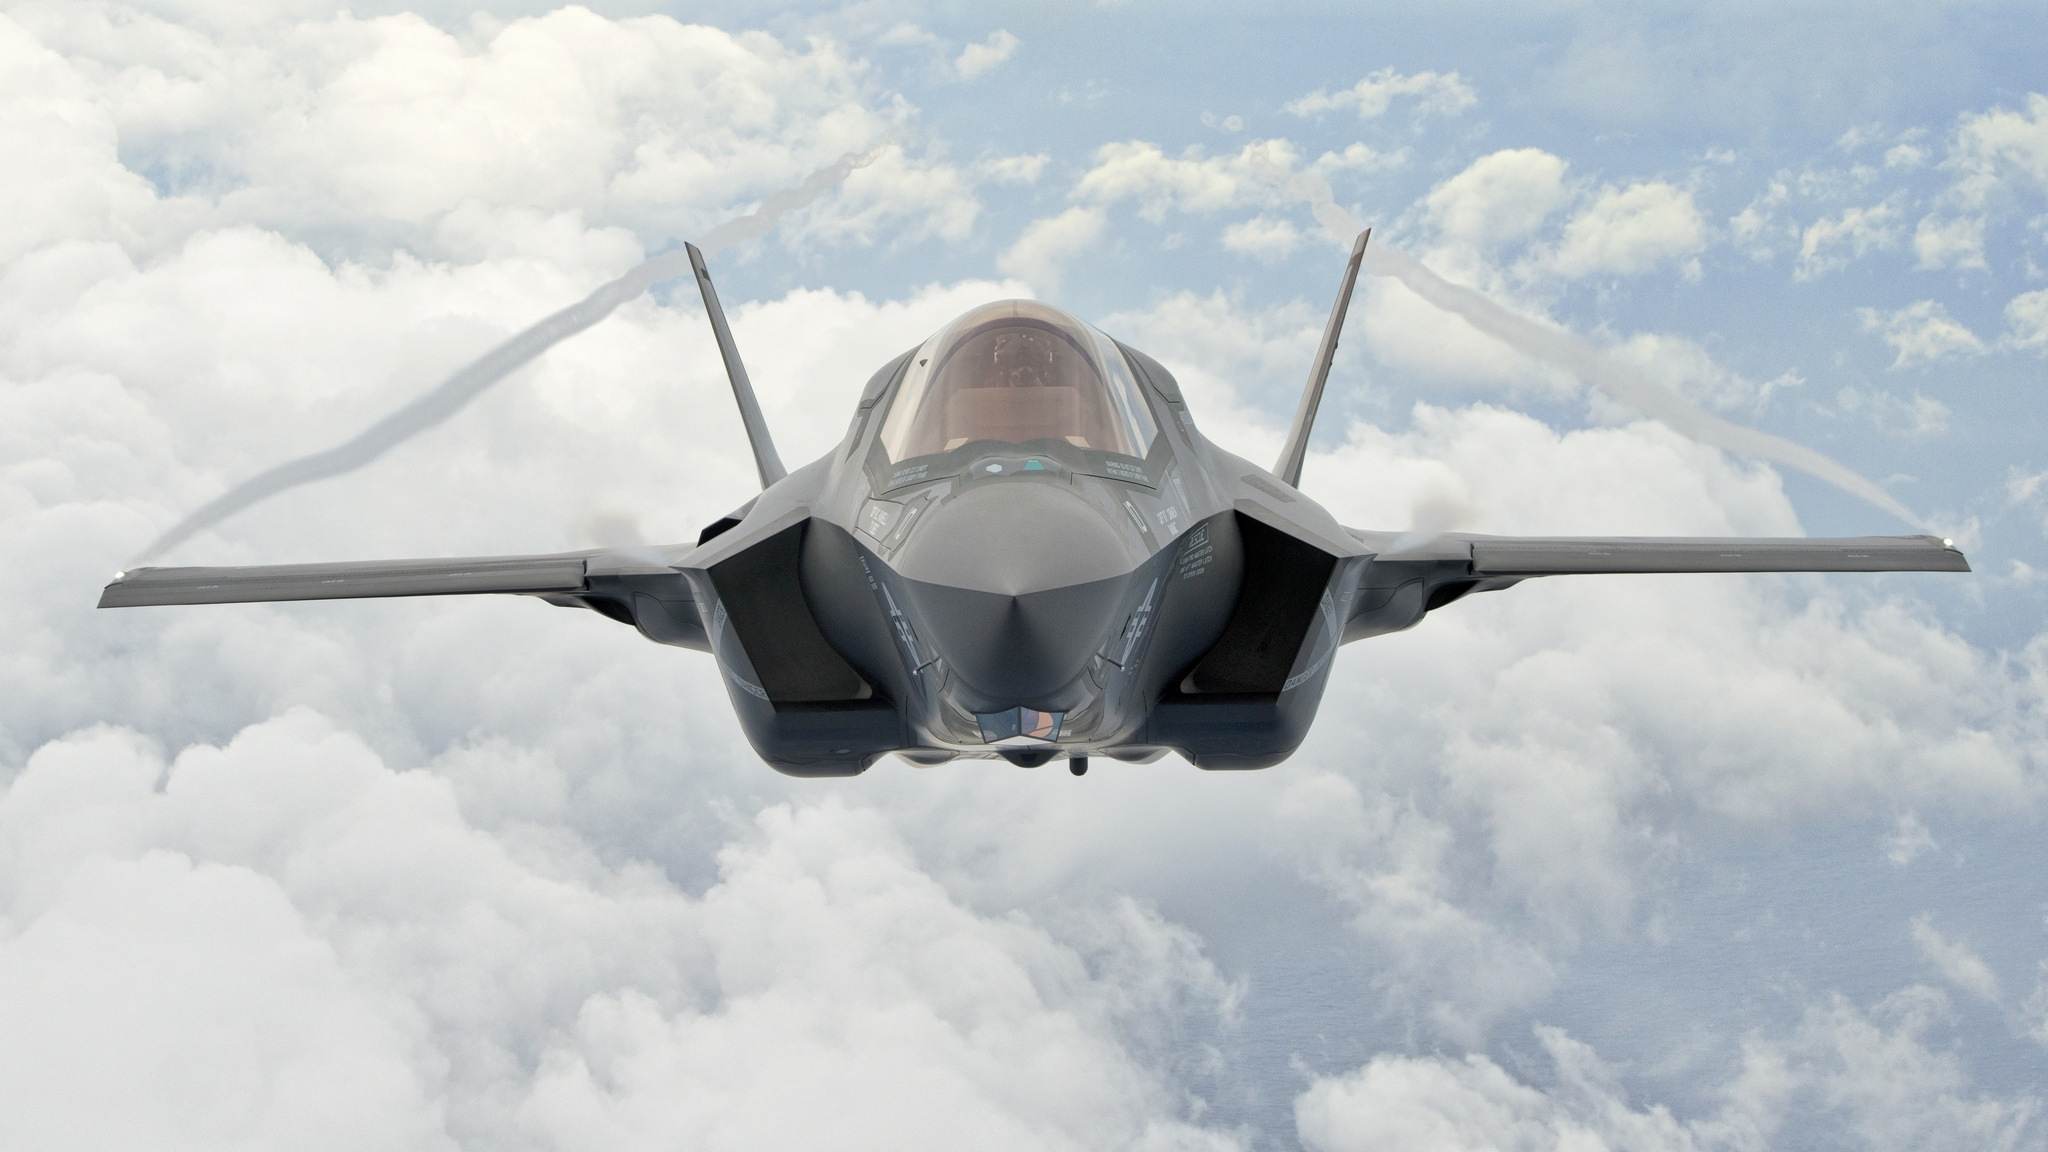 93 lockheed martin f-35 lightning ii hd wallpapers | background